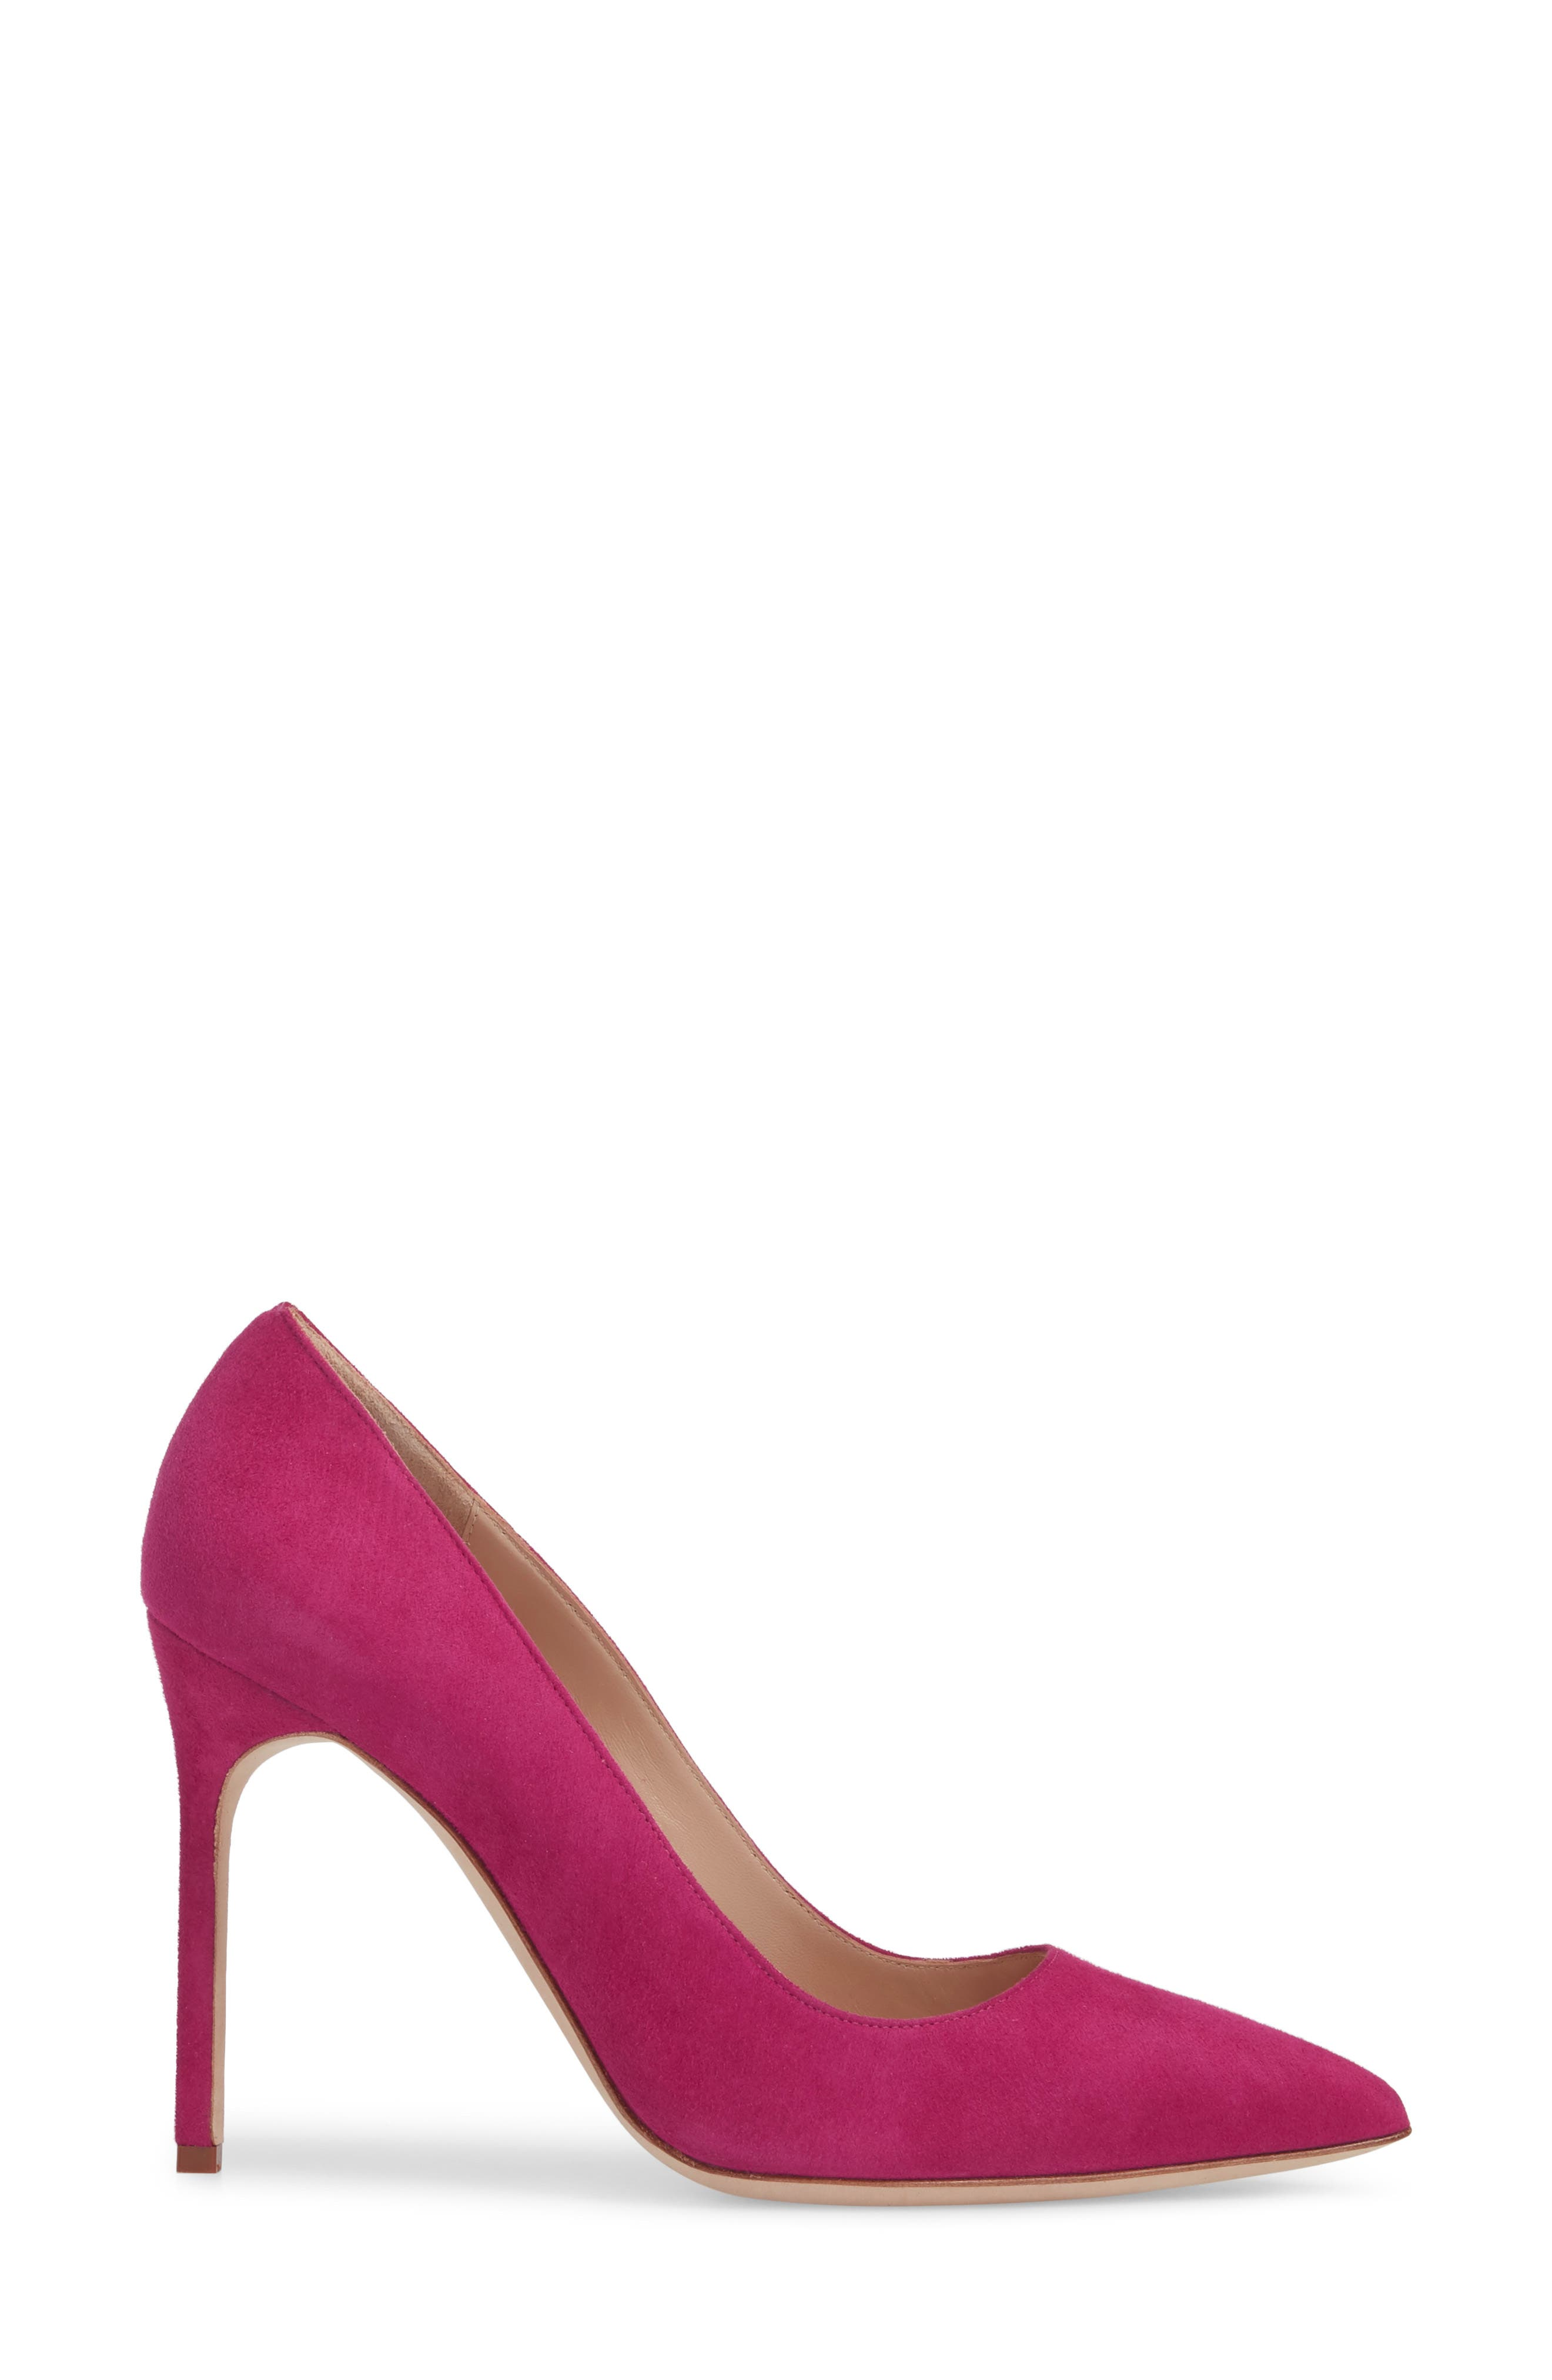 'BB' Pointy Toe Pump,                             Alternate thumbnail 3, color,                             Magenta